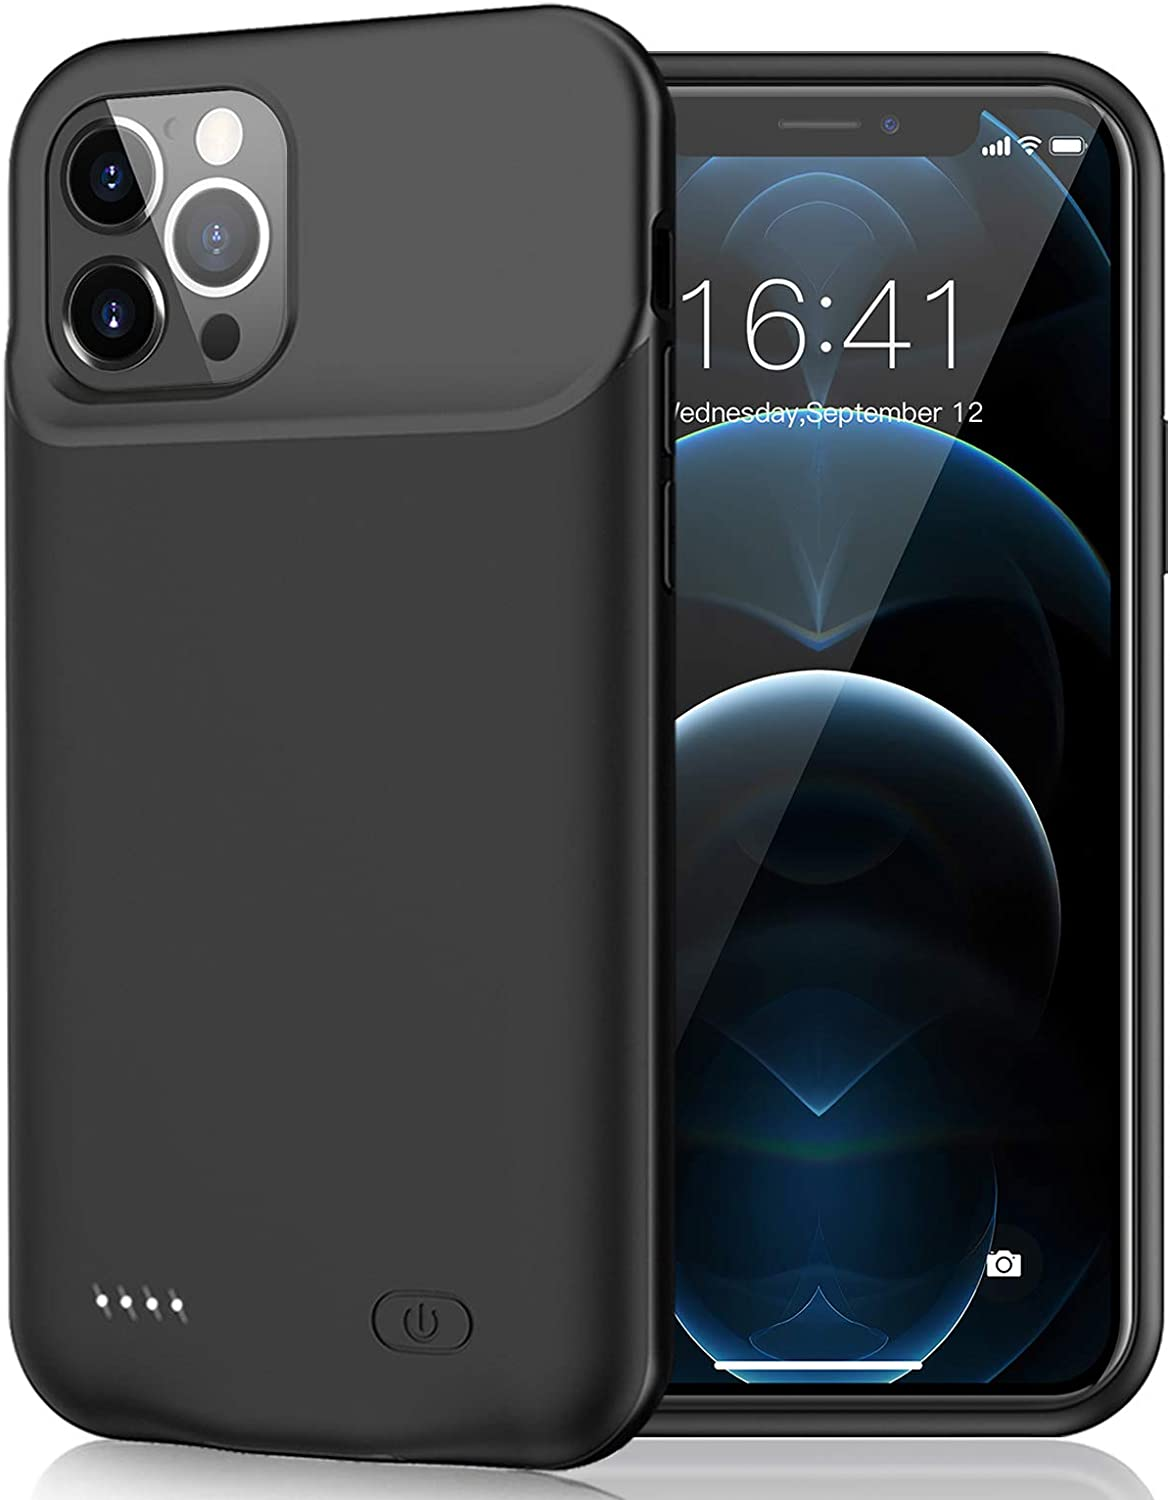 Battery Case for iPhone 12 Pro/iPhone12, 7000mAh Slim Portable Rechargeable Battery Pack Charging Case Compatible with iPhone 12 Pro/iPhone12 (6.1 inch) Extended Battery Charger Case-Black